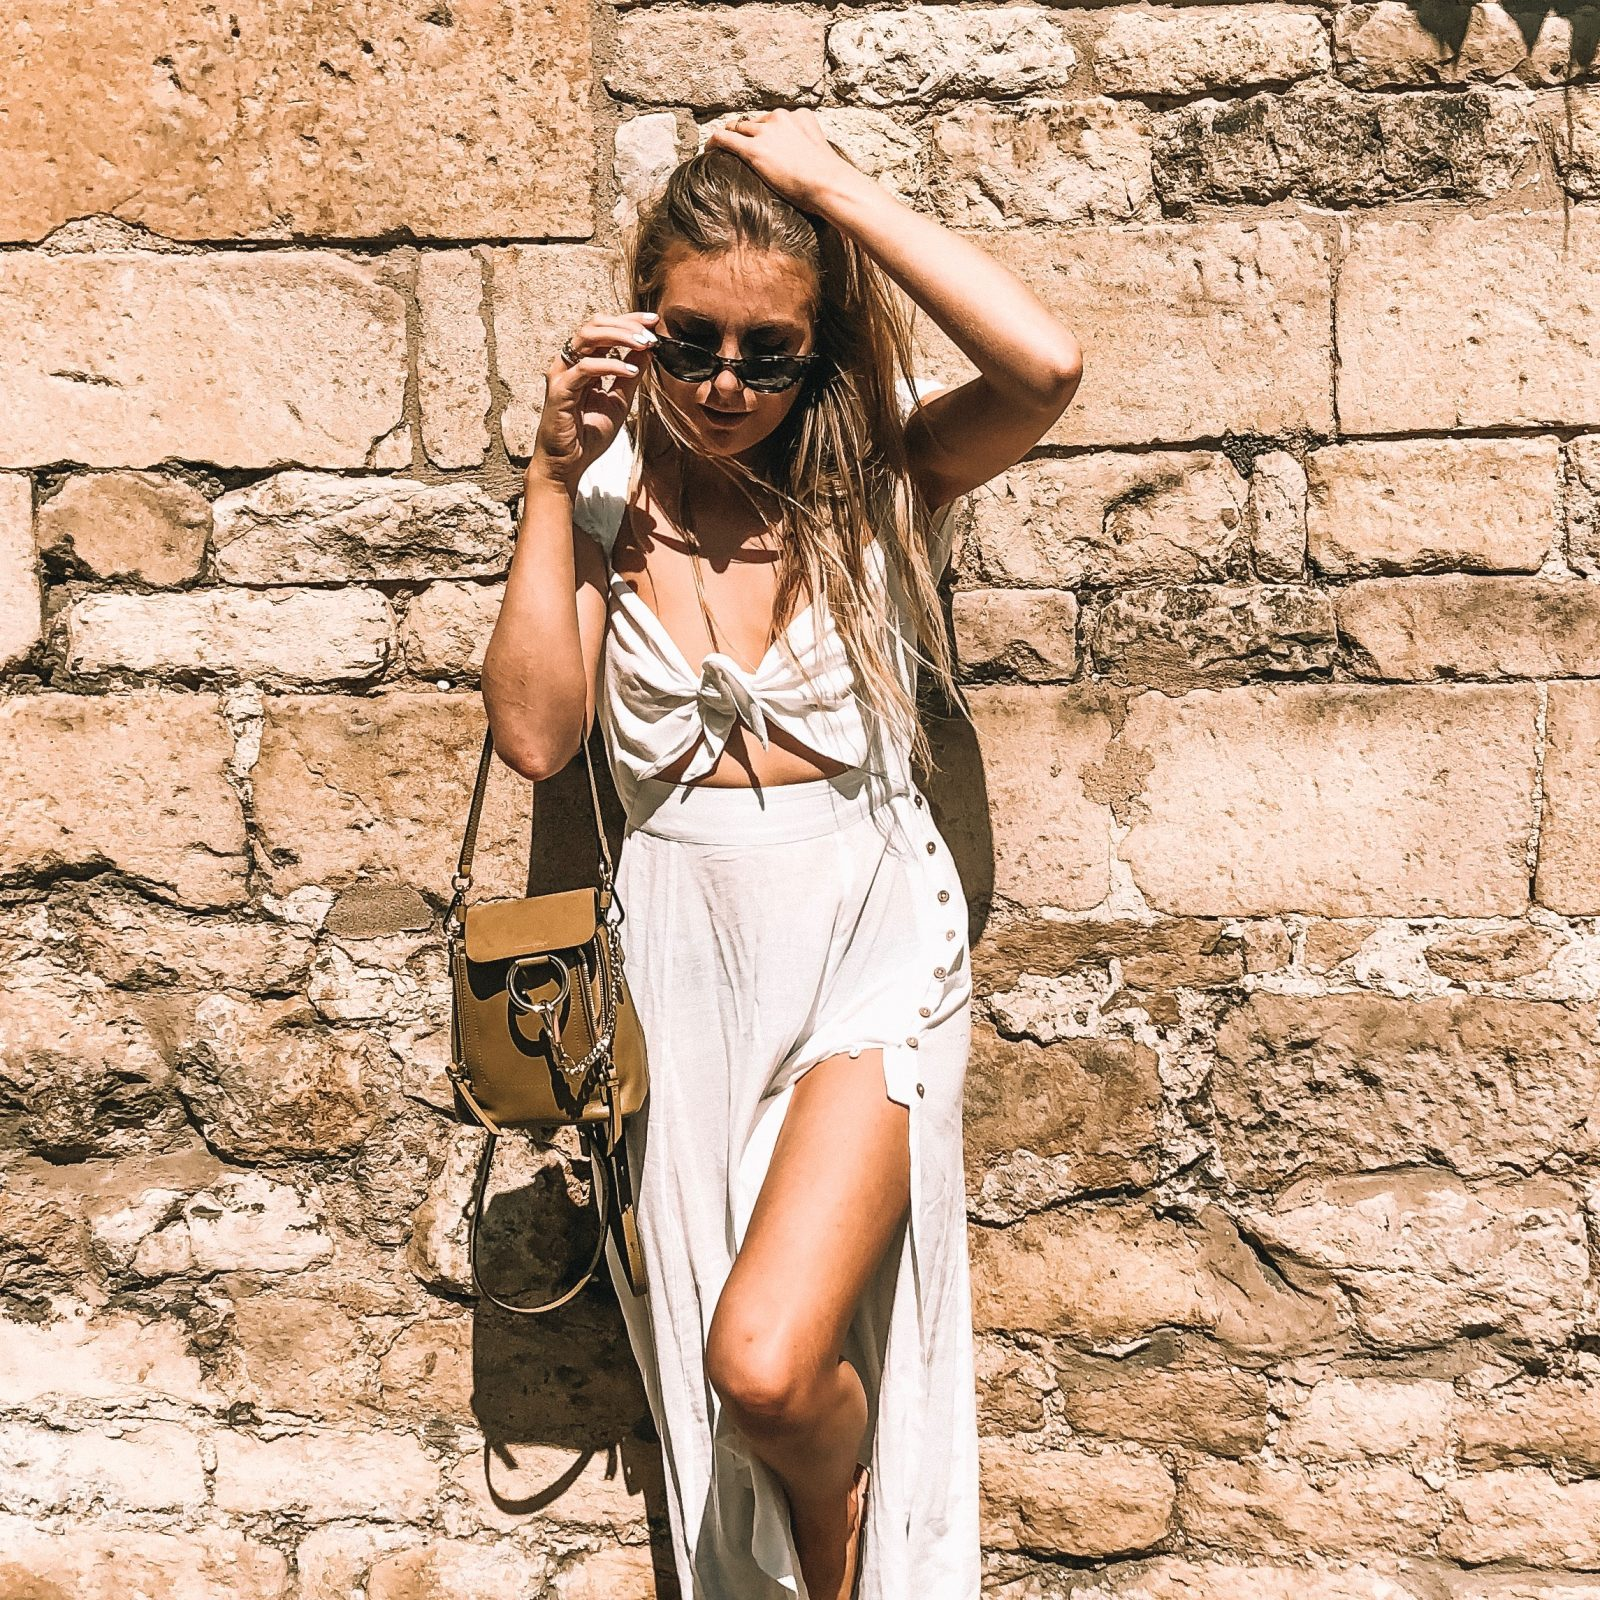 Free People Summer Dress - Free People Getaway Dress - Fashion Blogger Sinead Crowe